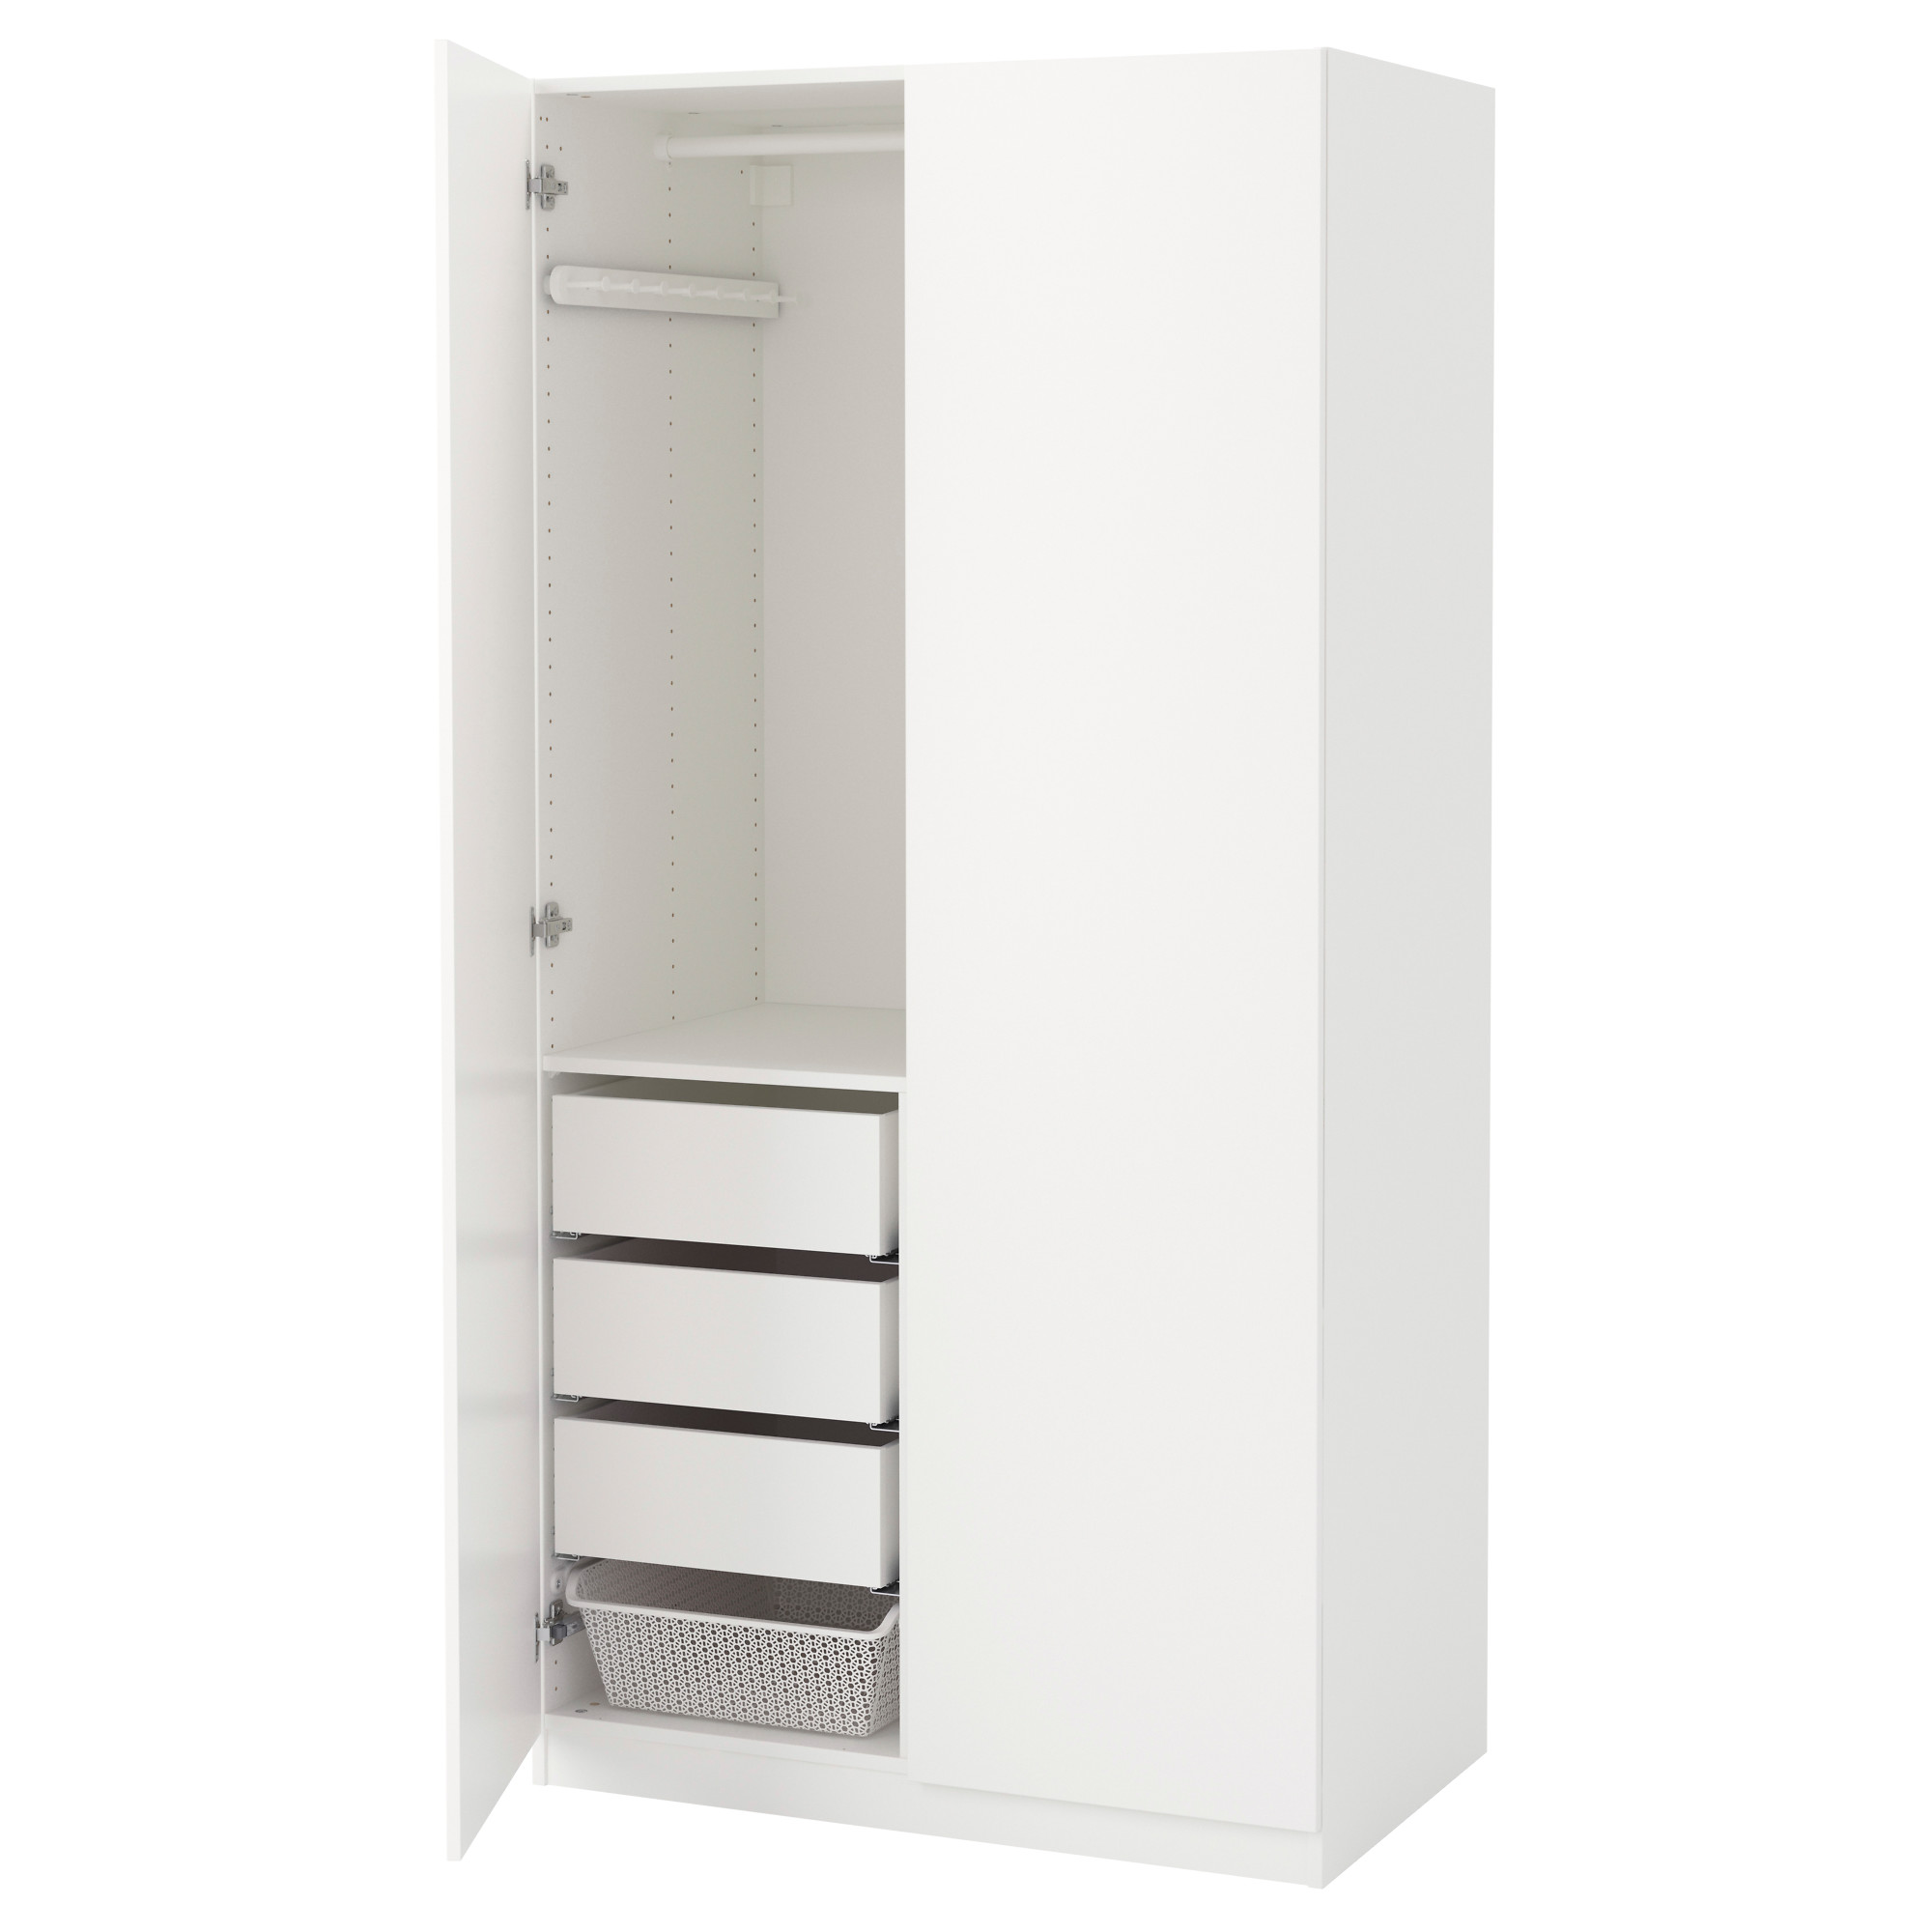 Ikea Wardrobe | Ikea Customizable Wardrobes | Ikea Pax Wardrobe Review